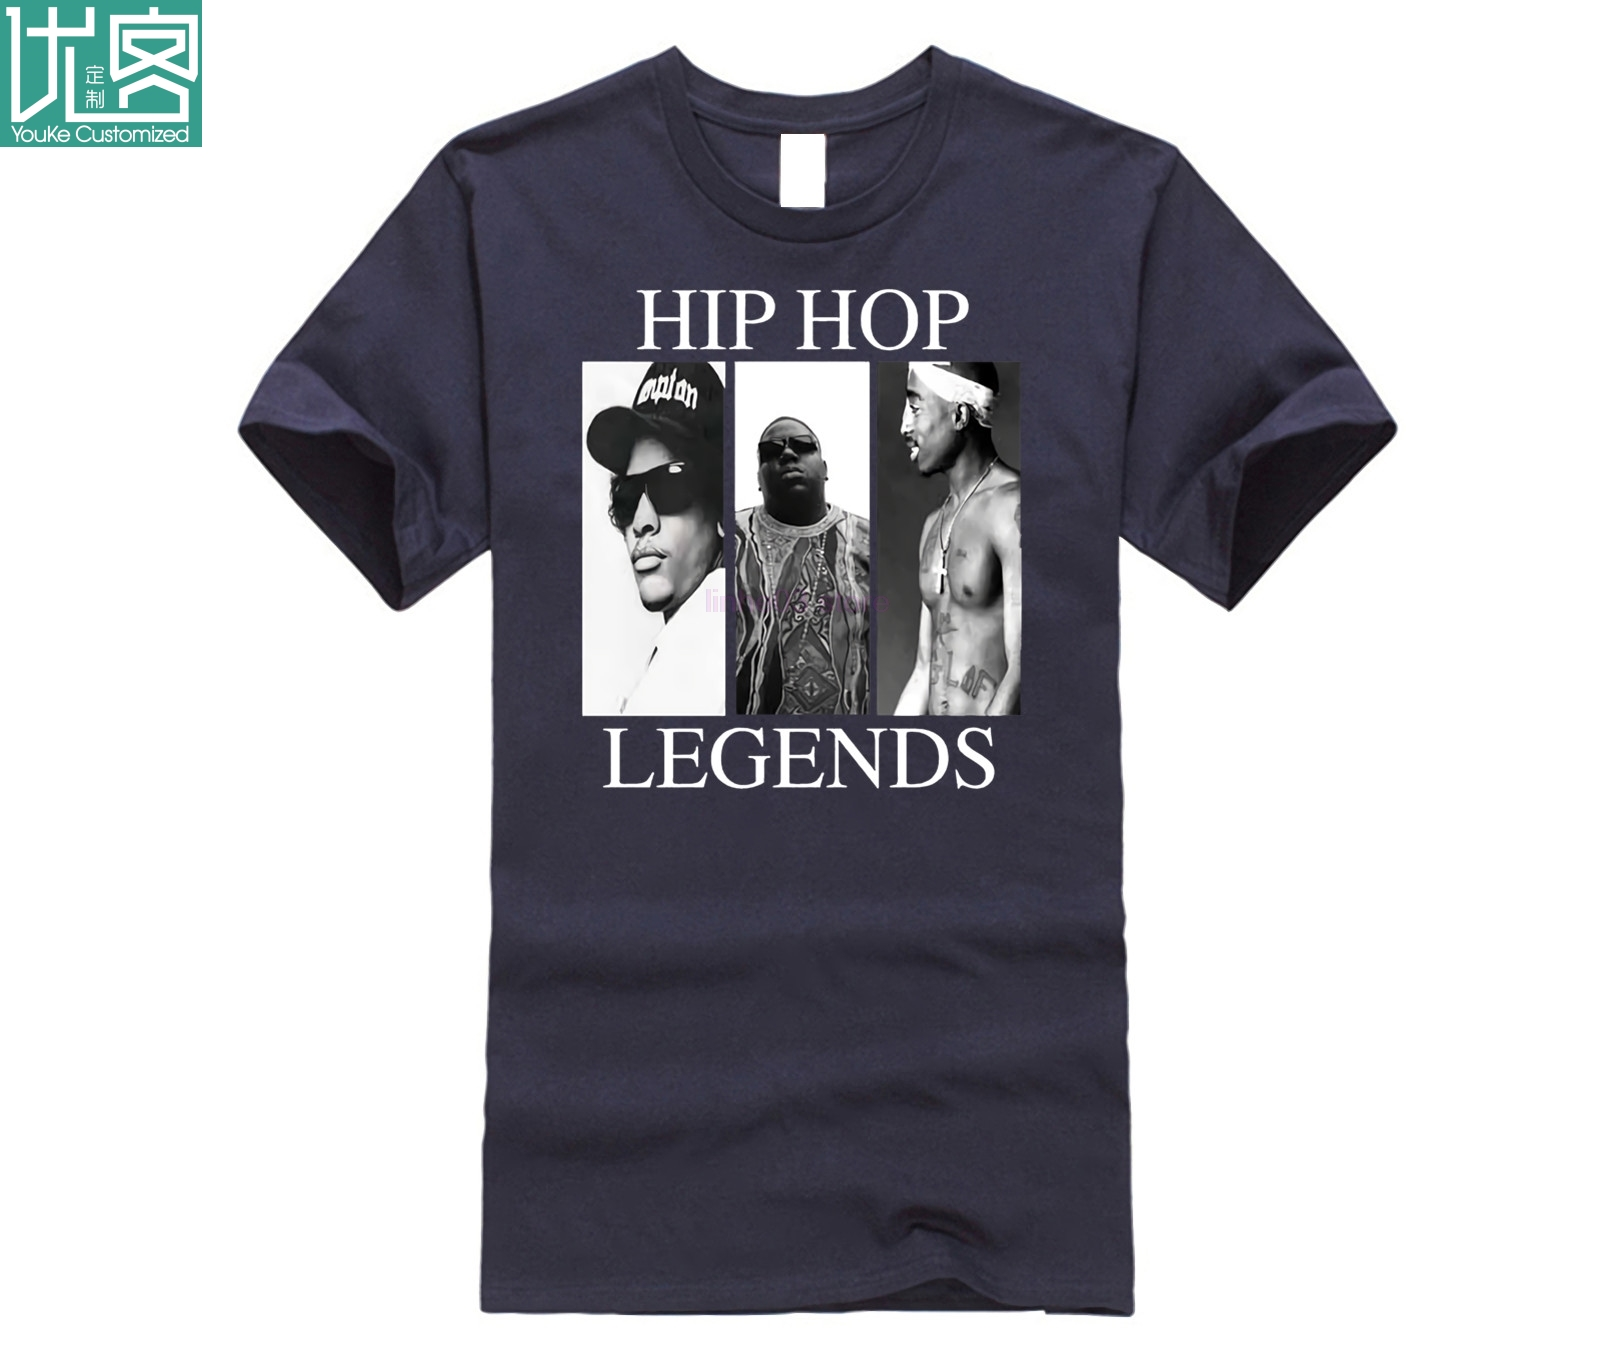 Hip Hop Legends NEW Graphic Mens T Shirt Compton 2 Pac Biggie Smalls Eazy E Tupac Top Tee Summer 100 Cotton Tshirts in T Shirts from Men 39 s Clothing